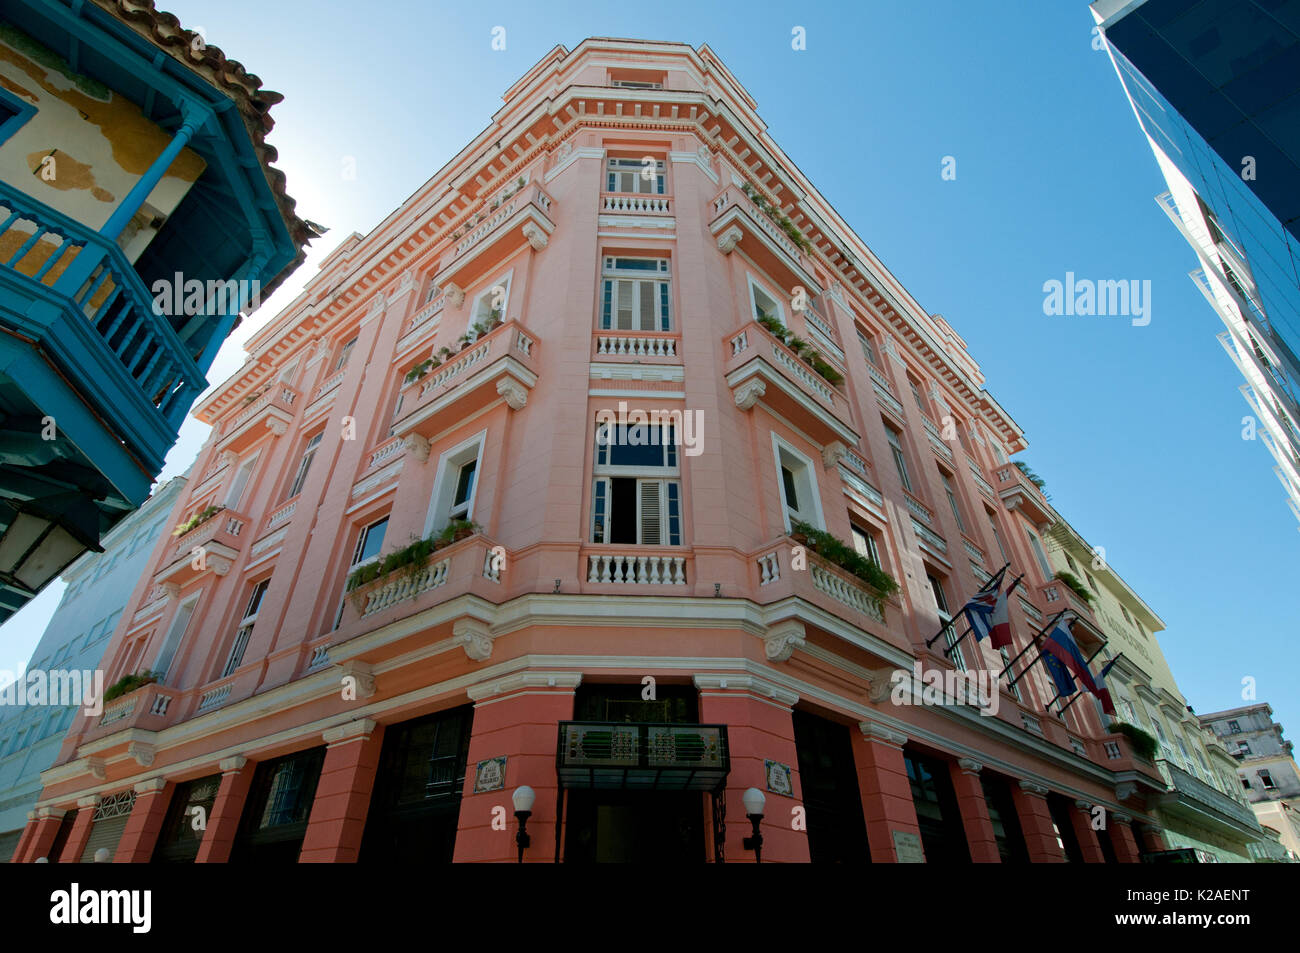 Hotel Ambos Mundos in Havana Cuba where Ernest Heminway lived from 1932 to 1939 - Stock Image